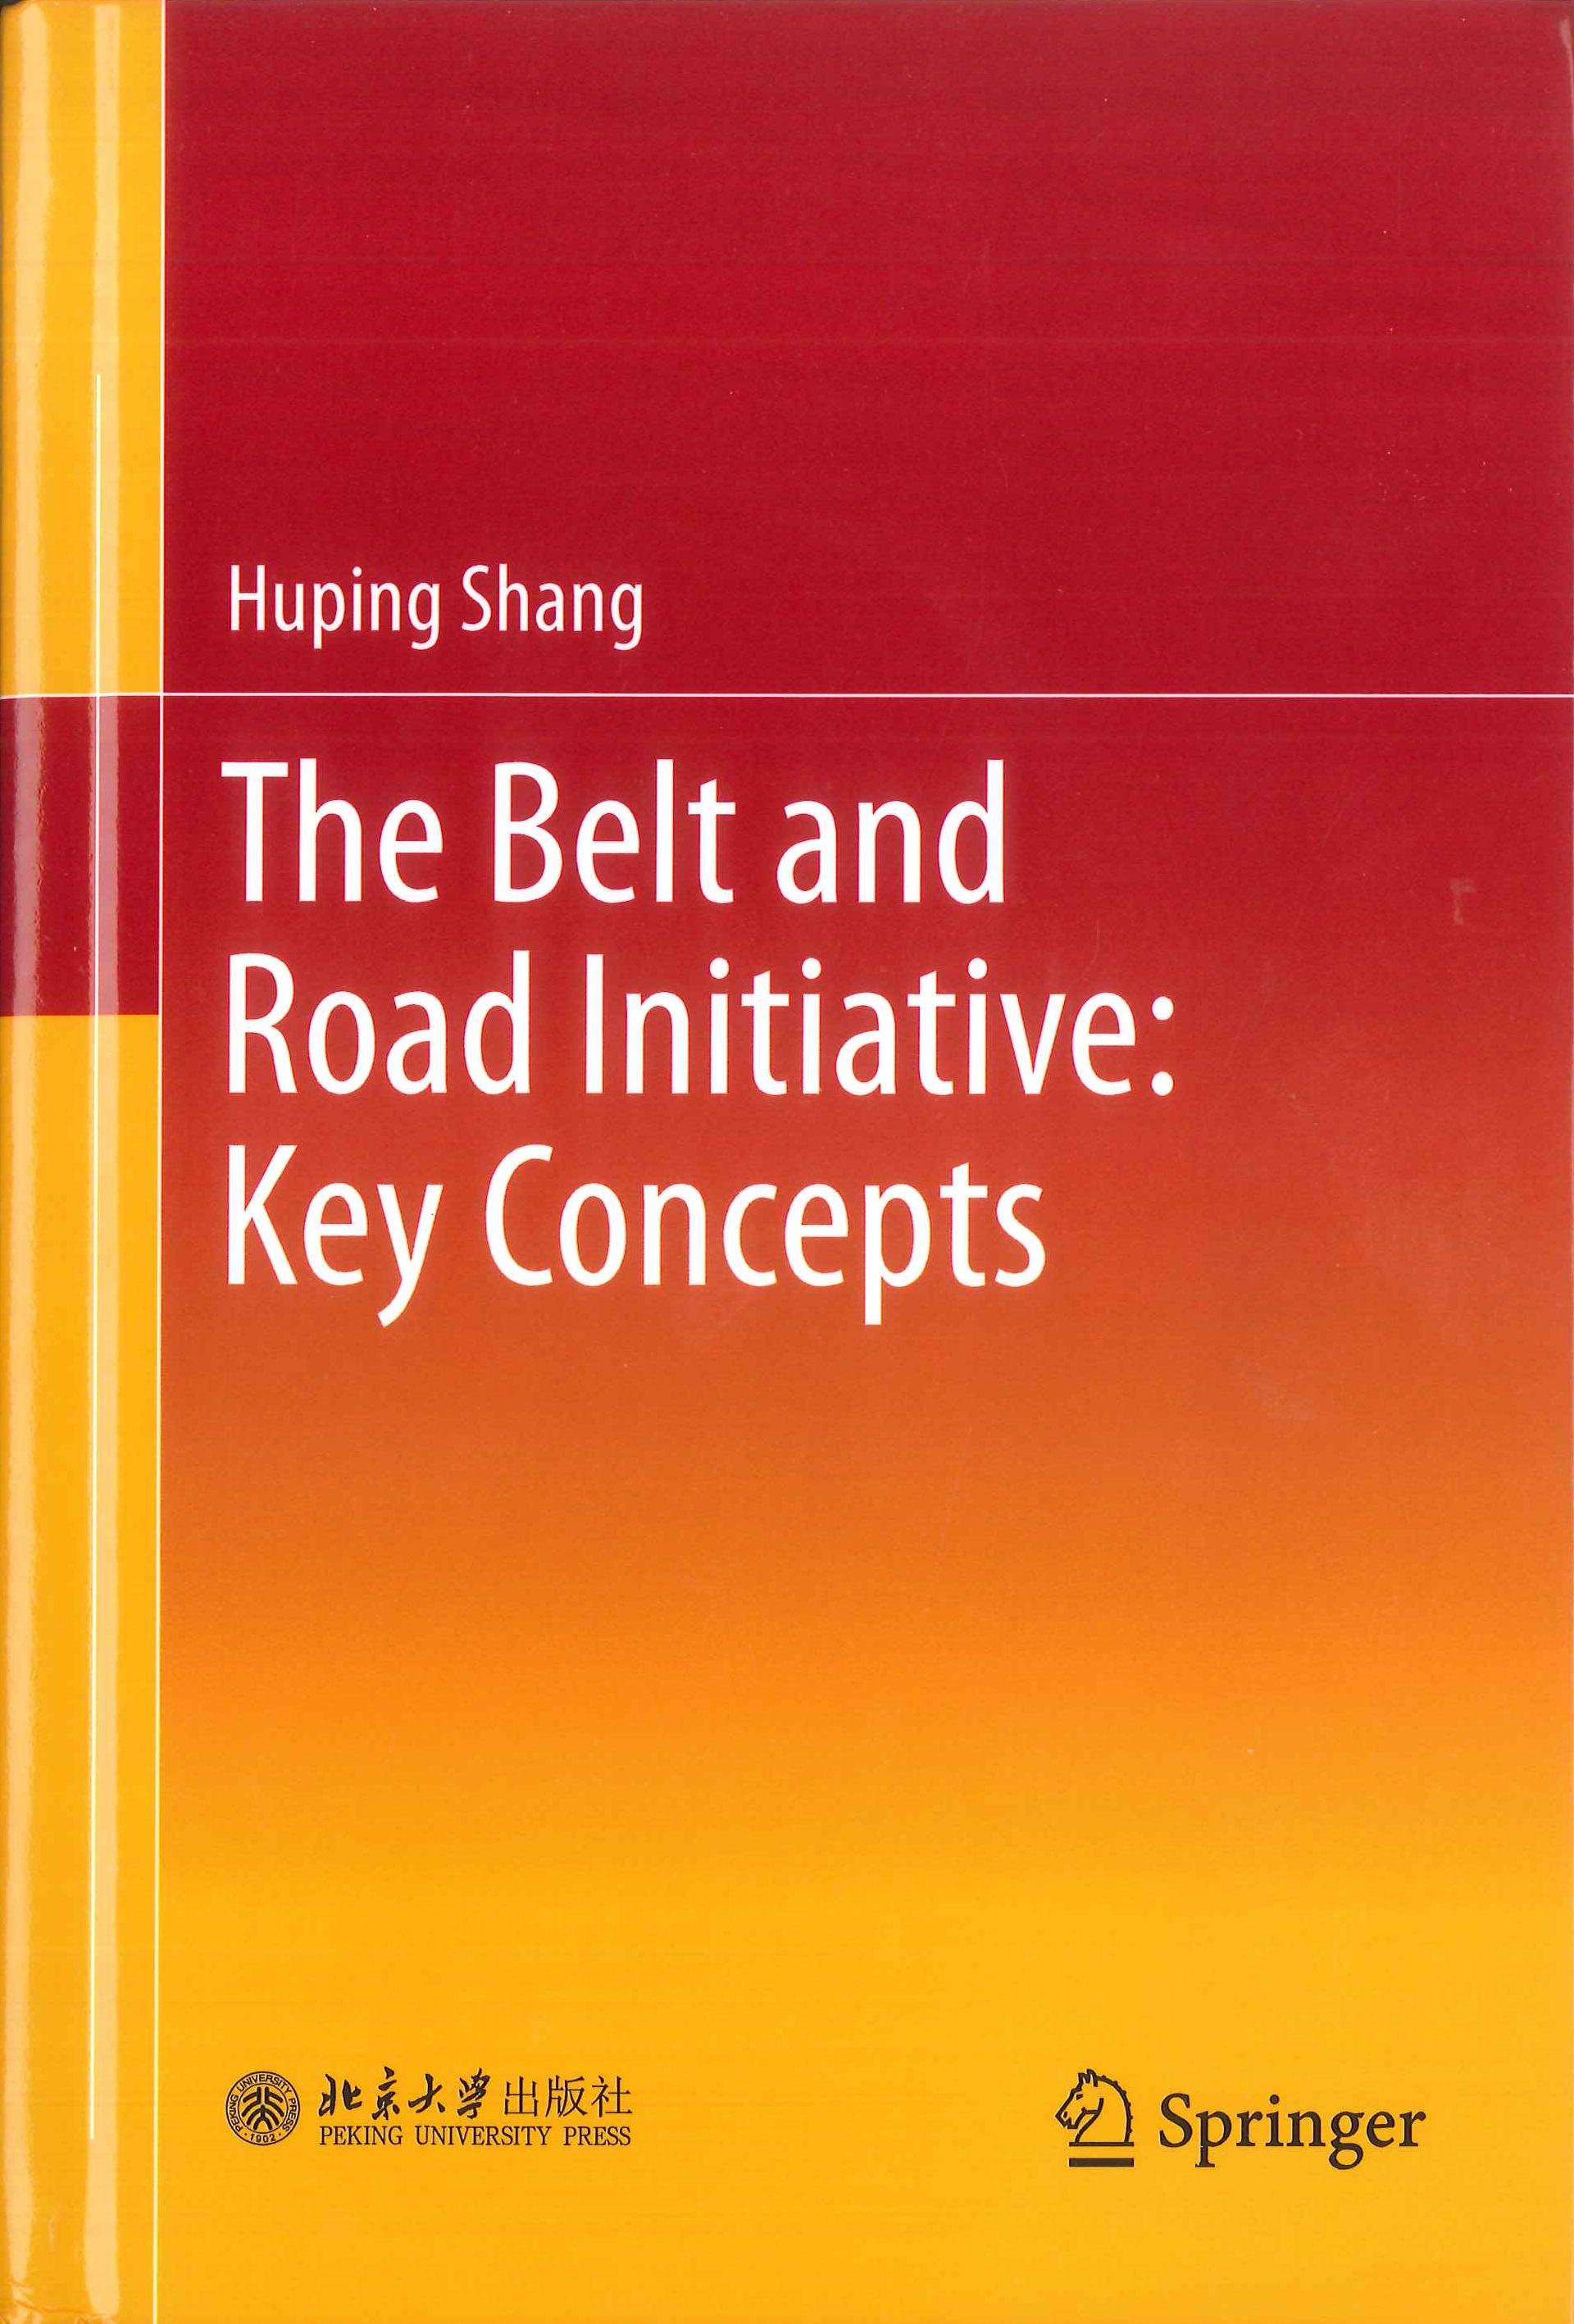 The belt and road initiative:key concepts